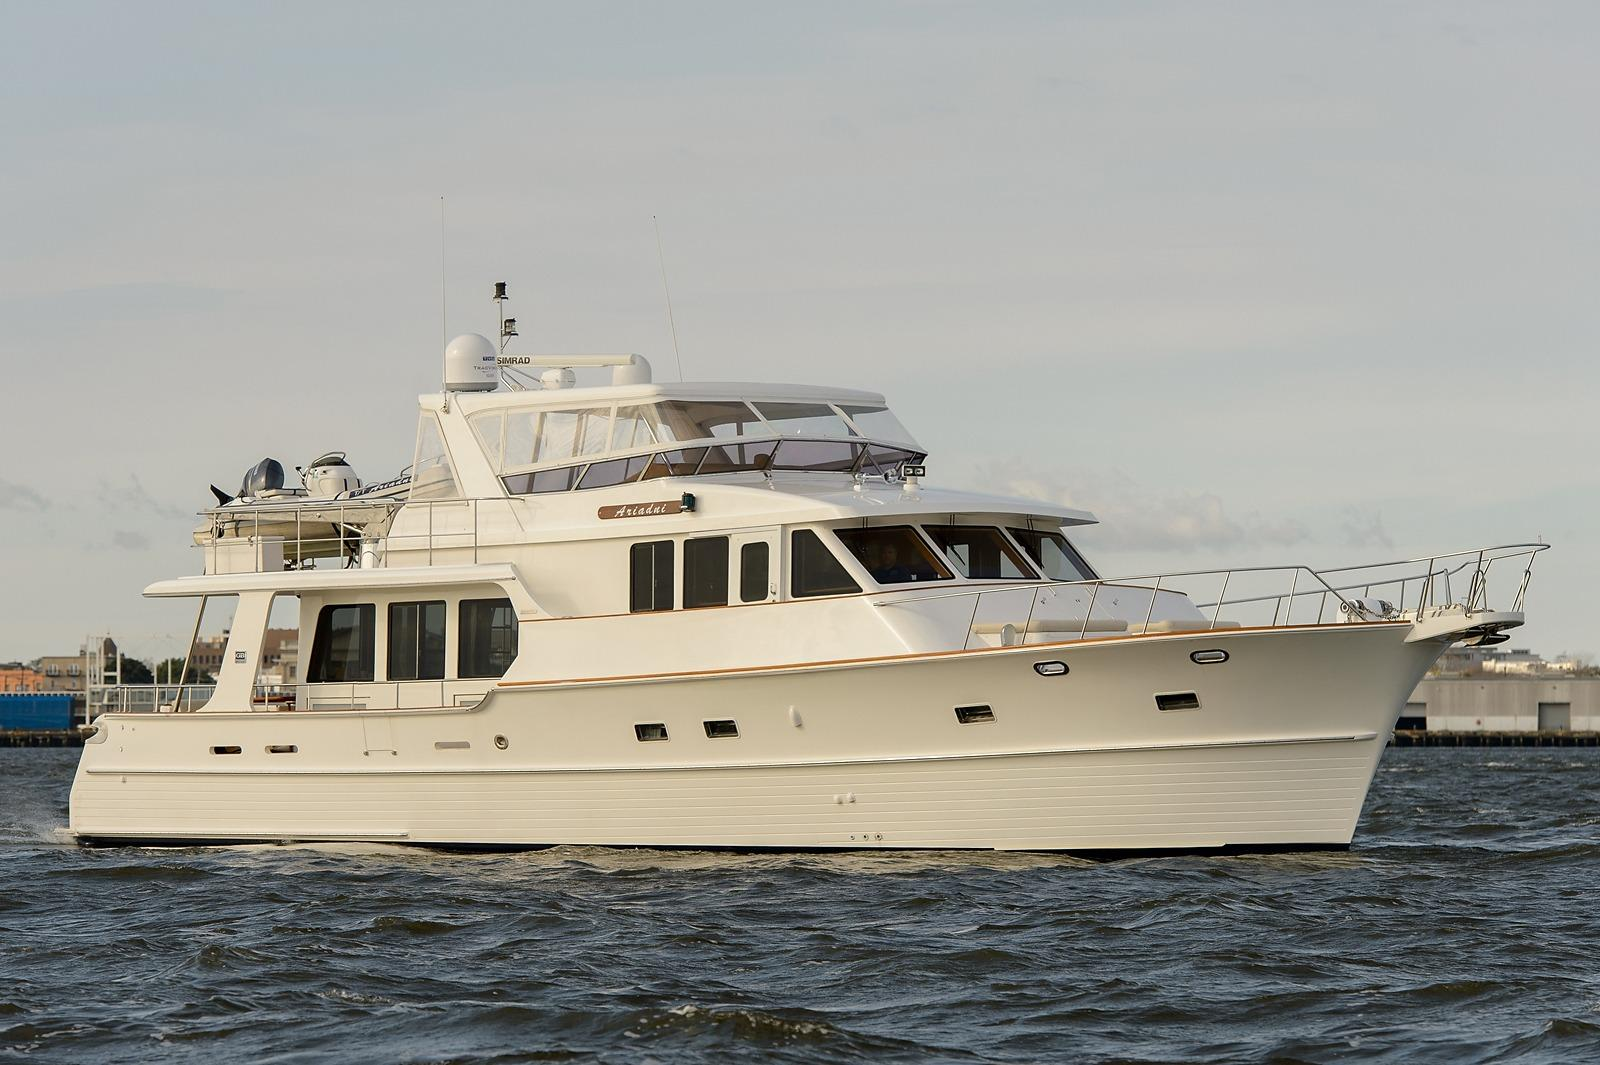 Used grand banks yachts for sale from 60 to 66 feet for Grand banks motor yachts for sale